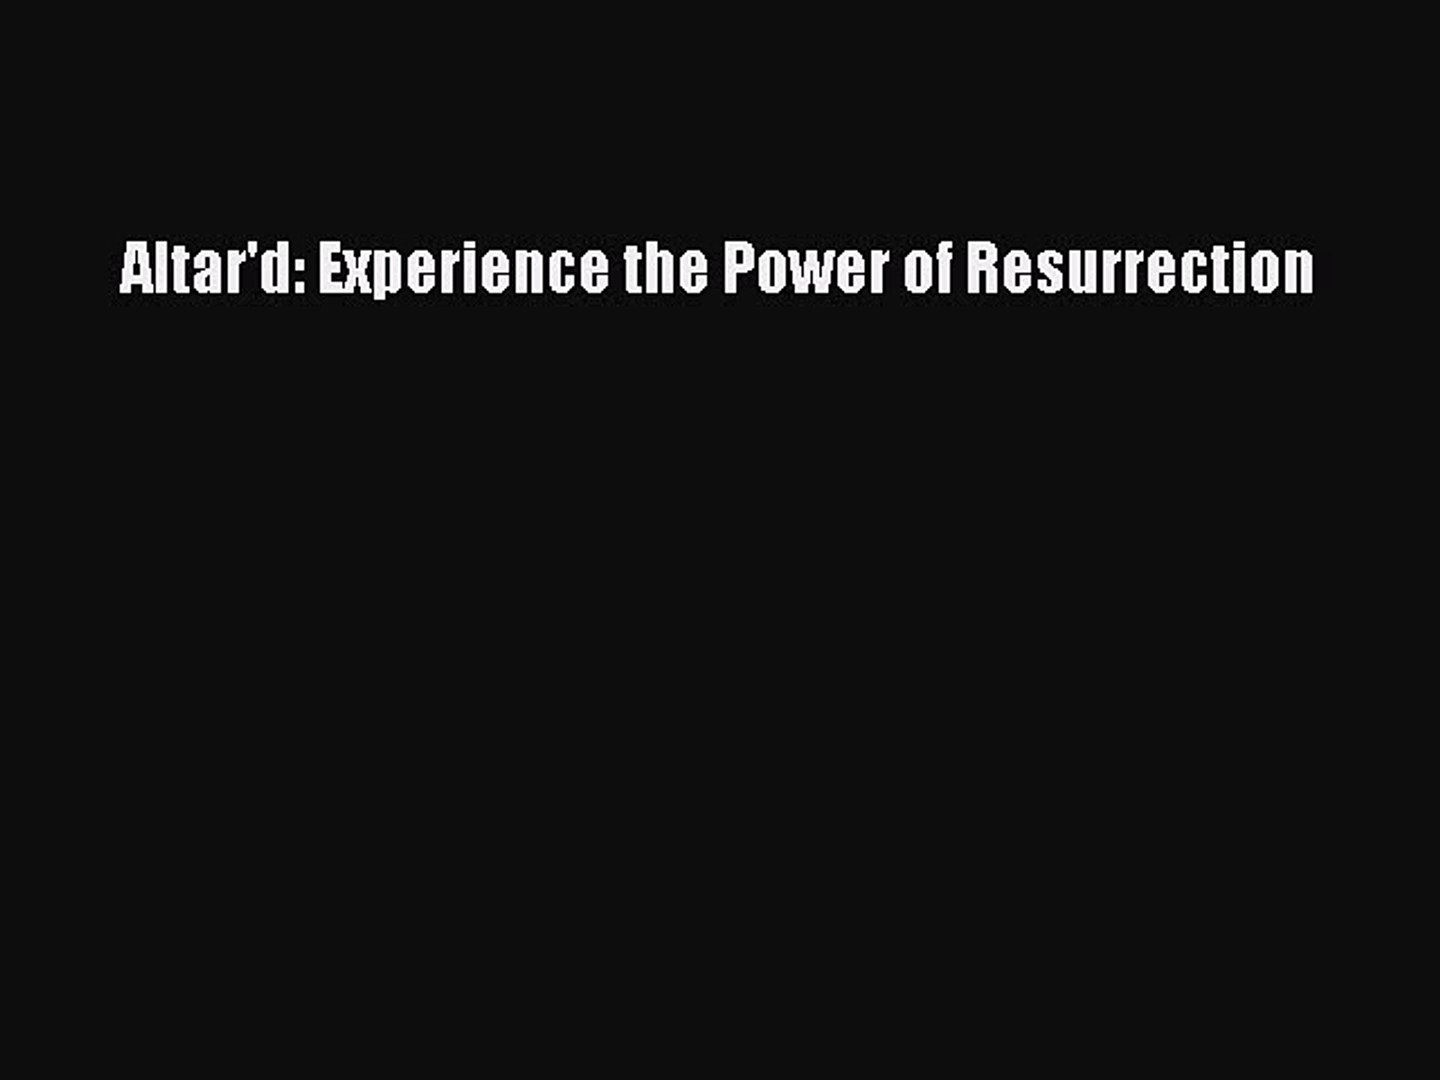 Altard: Experience the Power of Resurrection